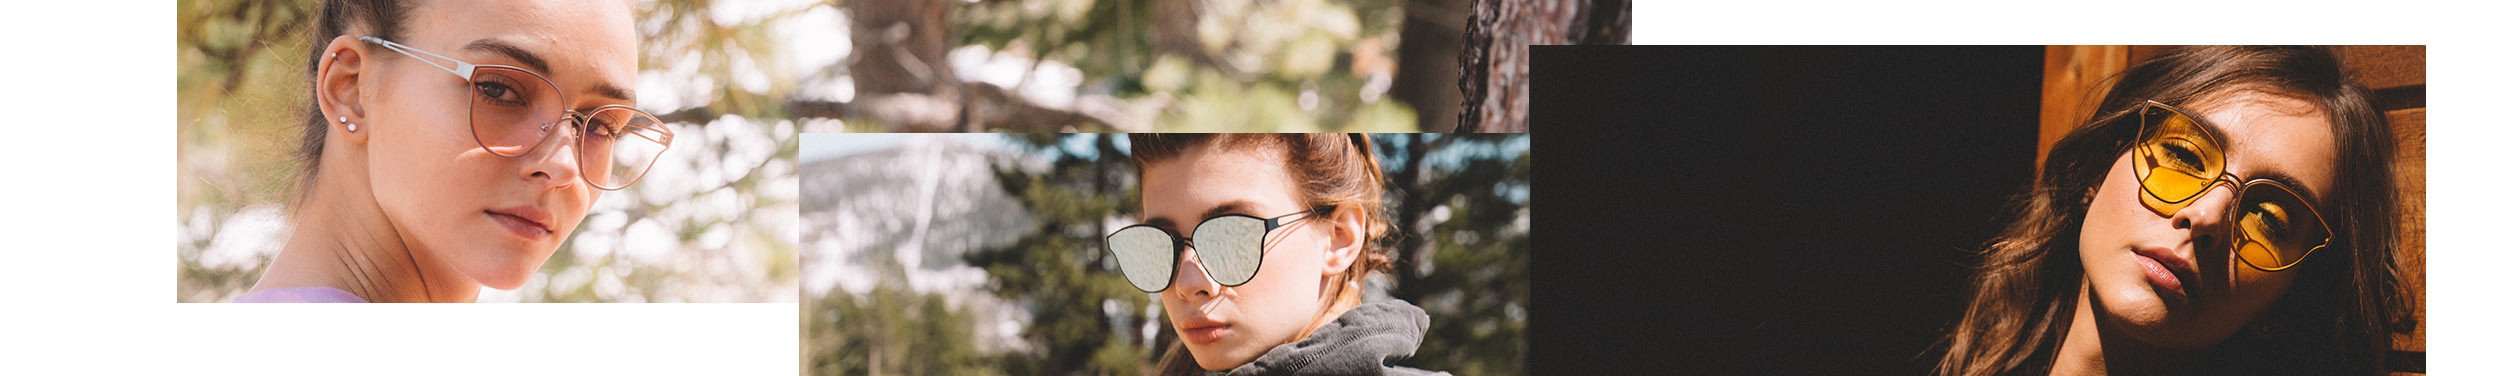 Hawkers Collection Omnia Sunglasses